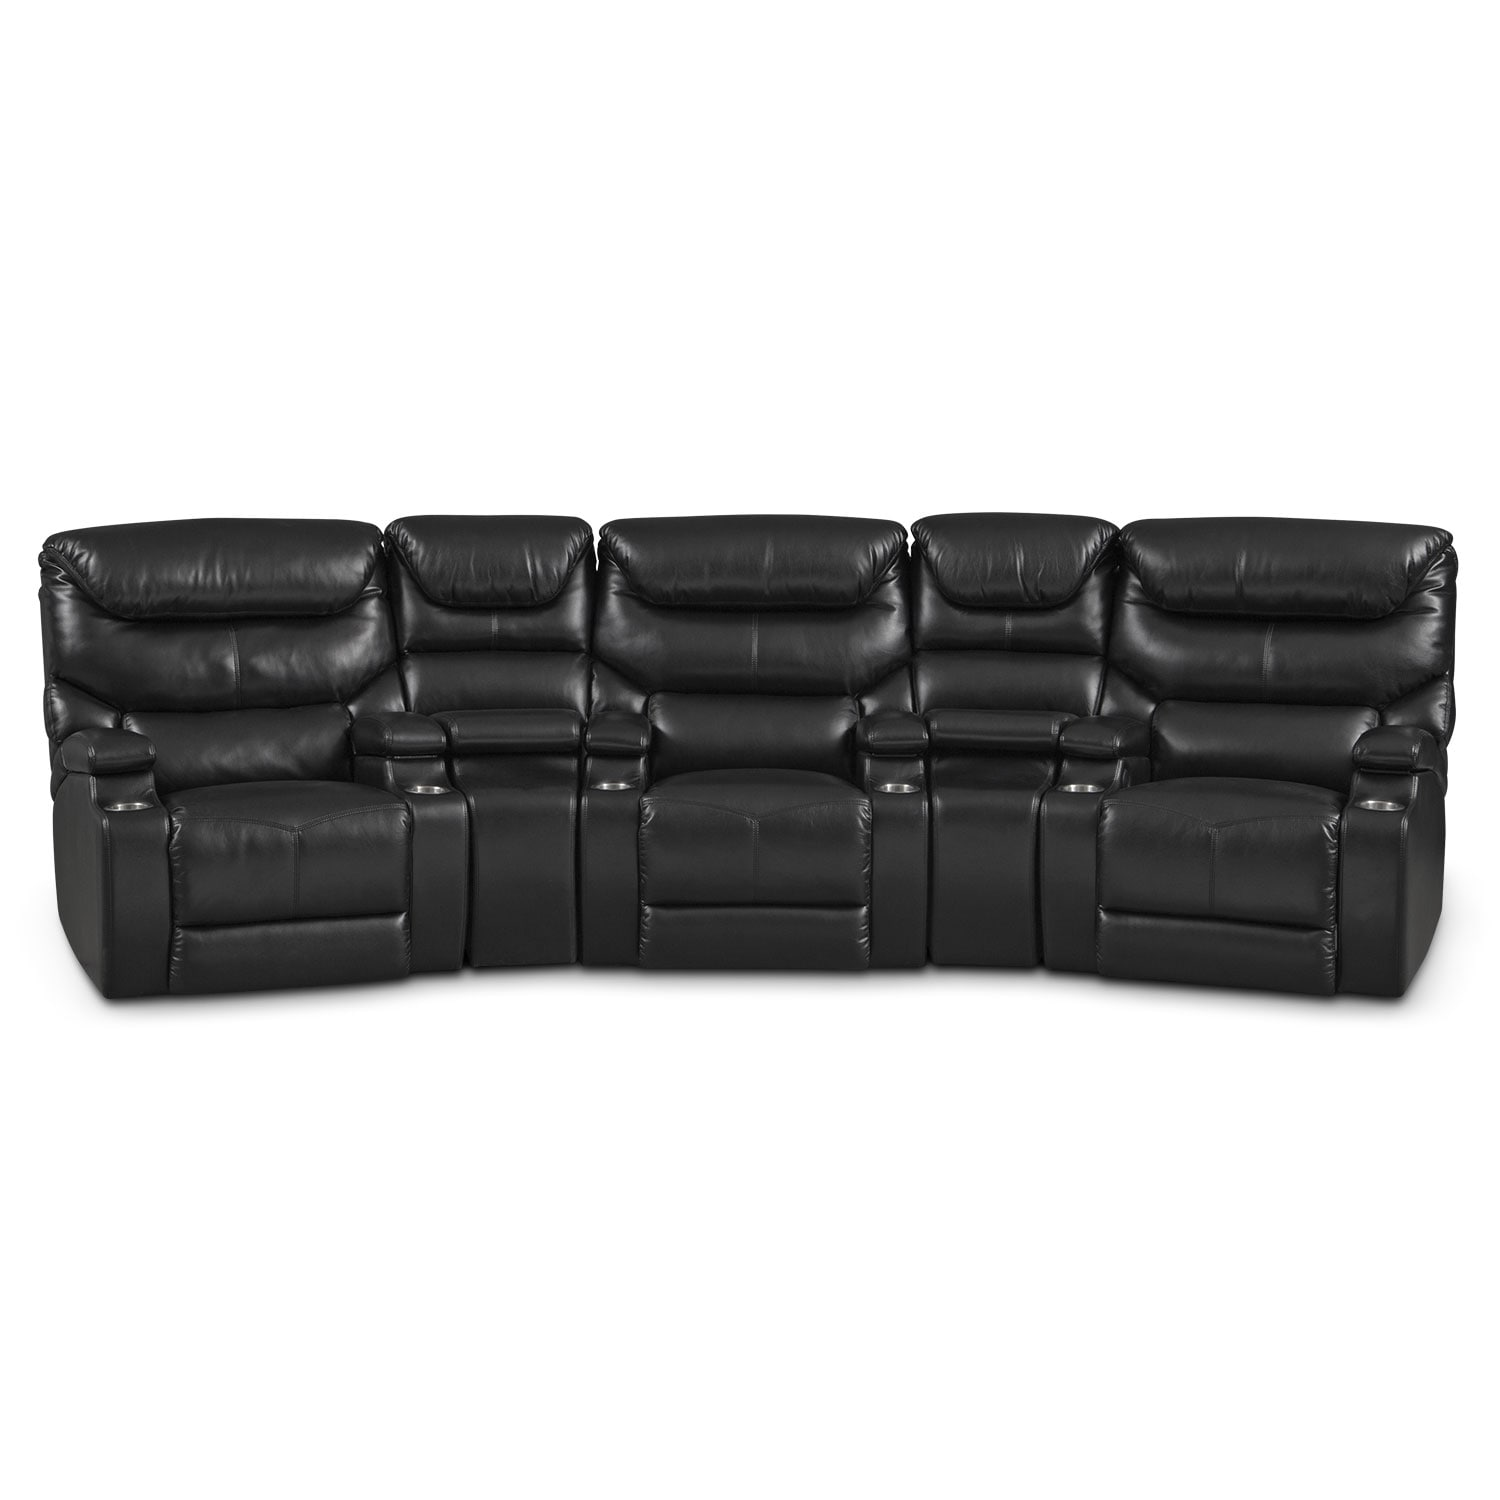 Delicieux Living Room Furniture   Saturn 5 Piece Power Home Theater Sectional